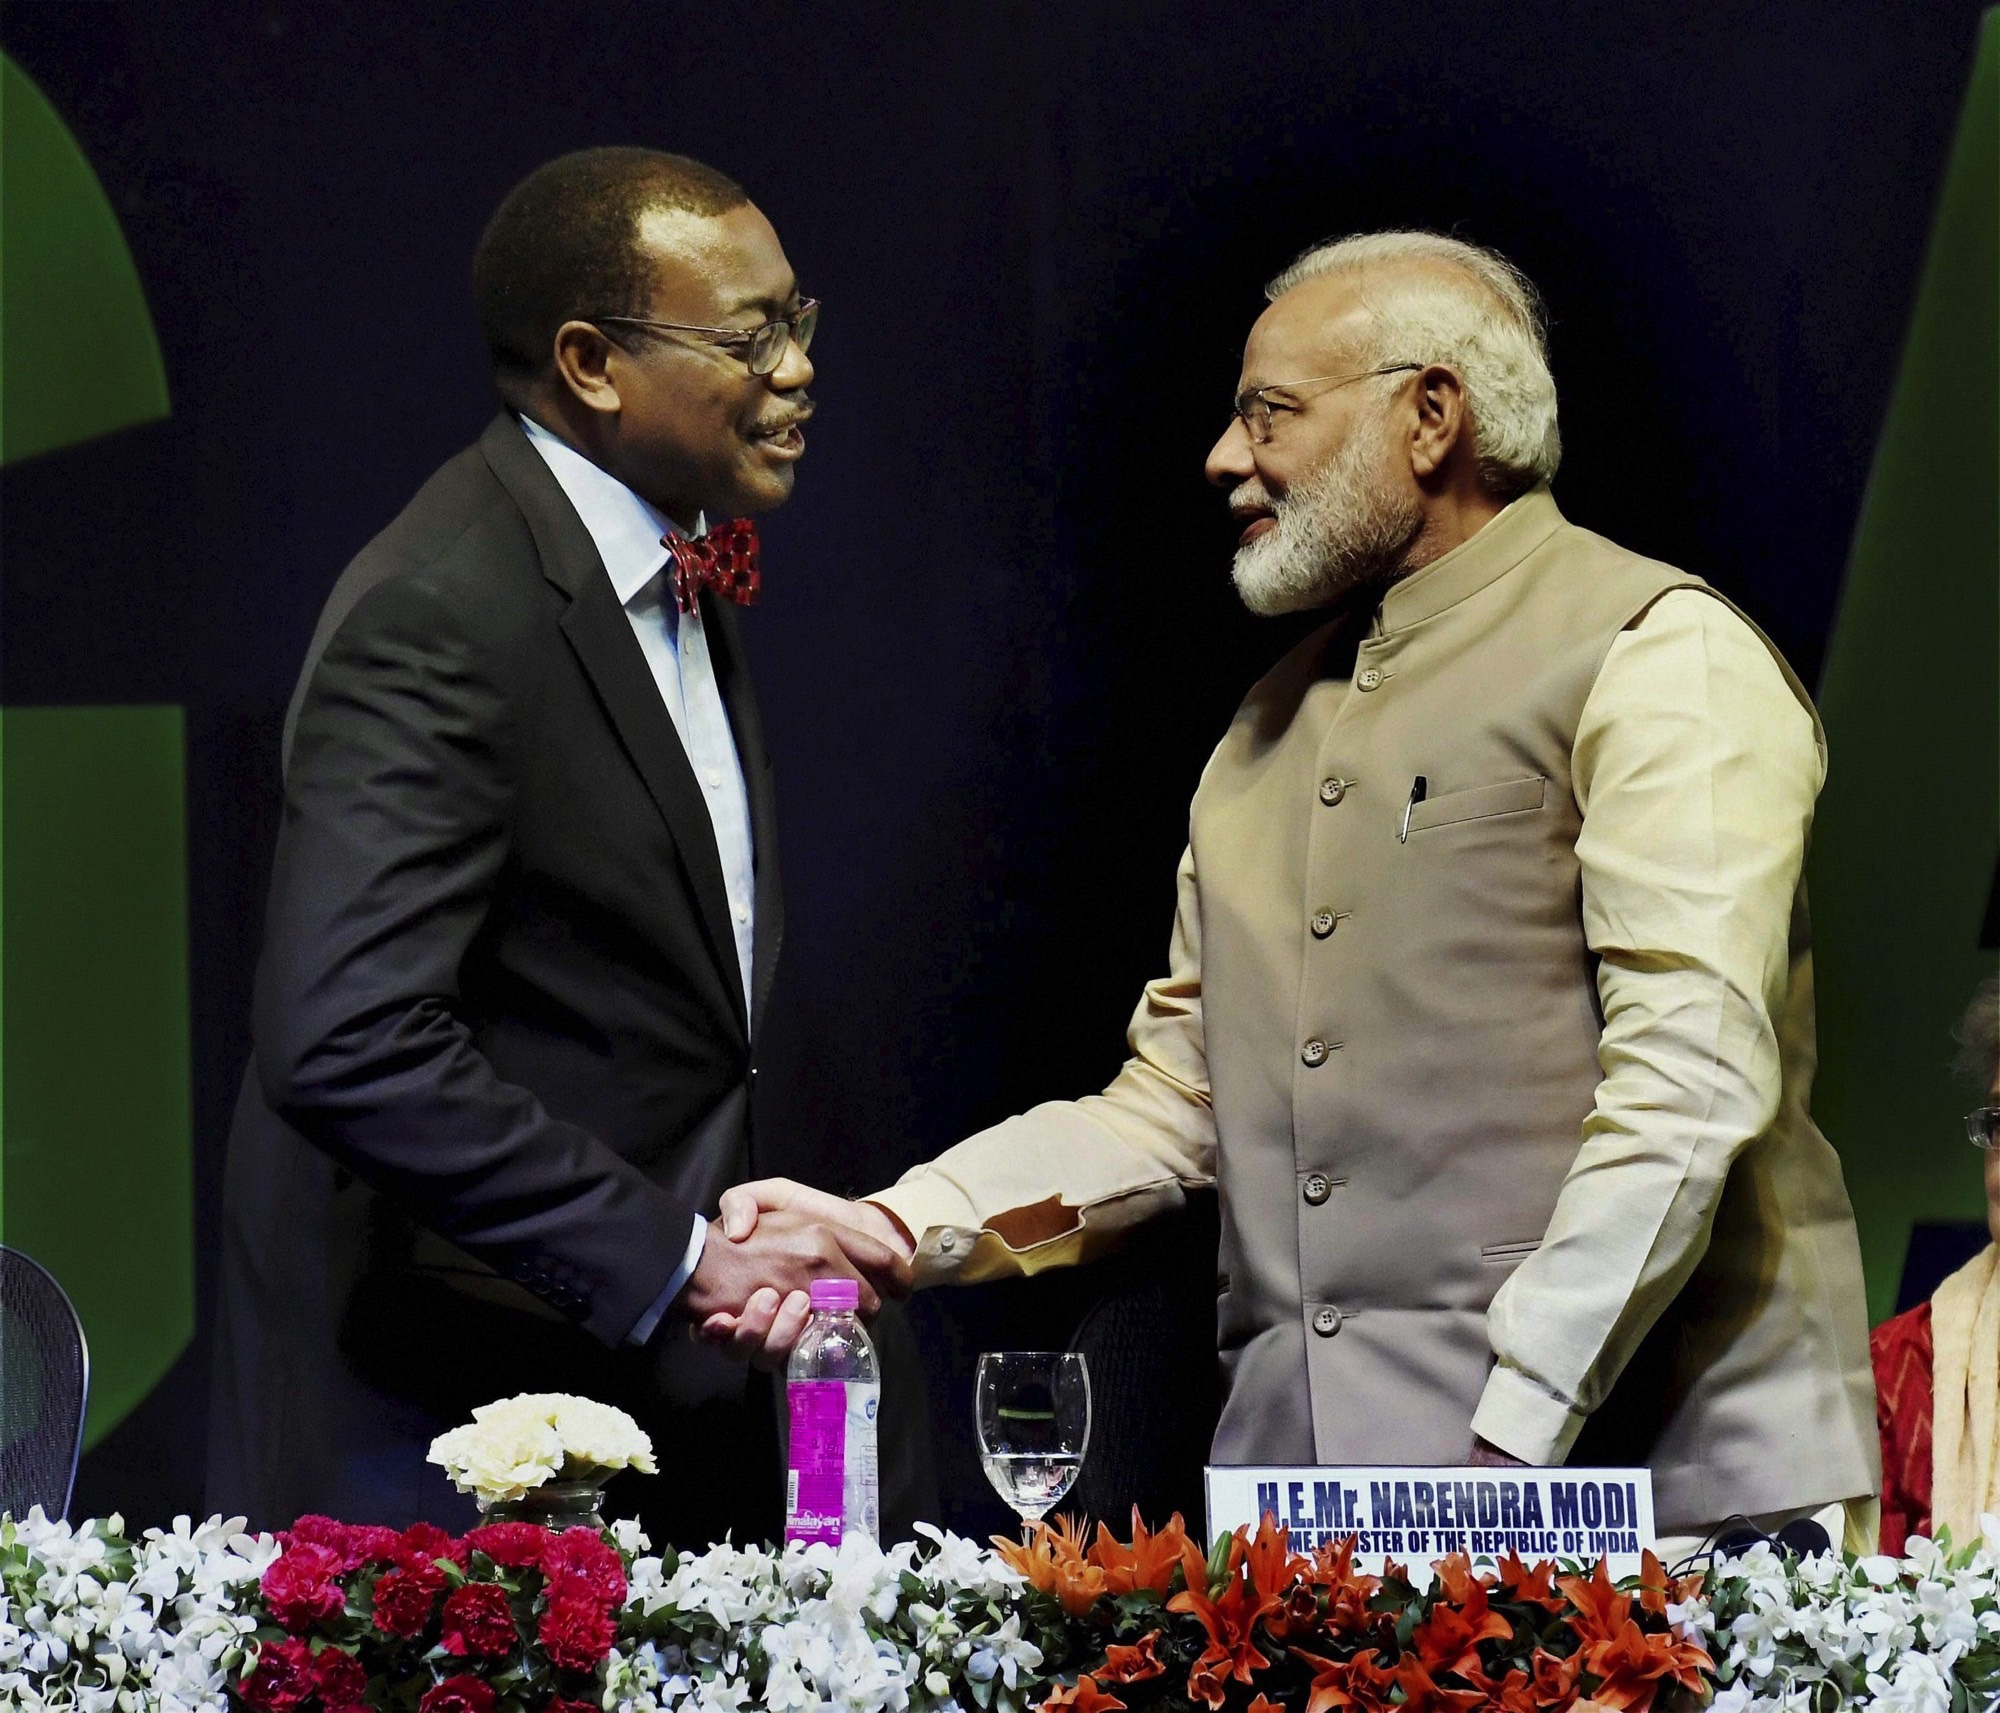 Following in China's Footsteps, Modi Proposes 'Asia-Africa Growth Corridor'